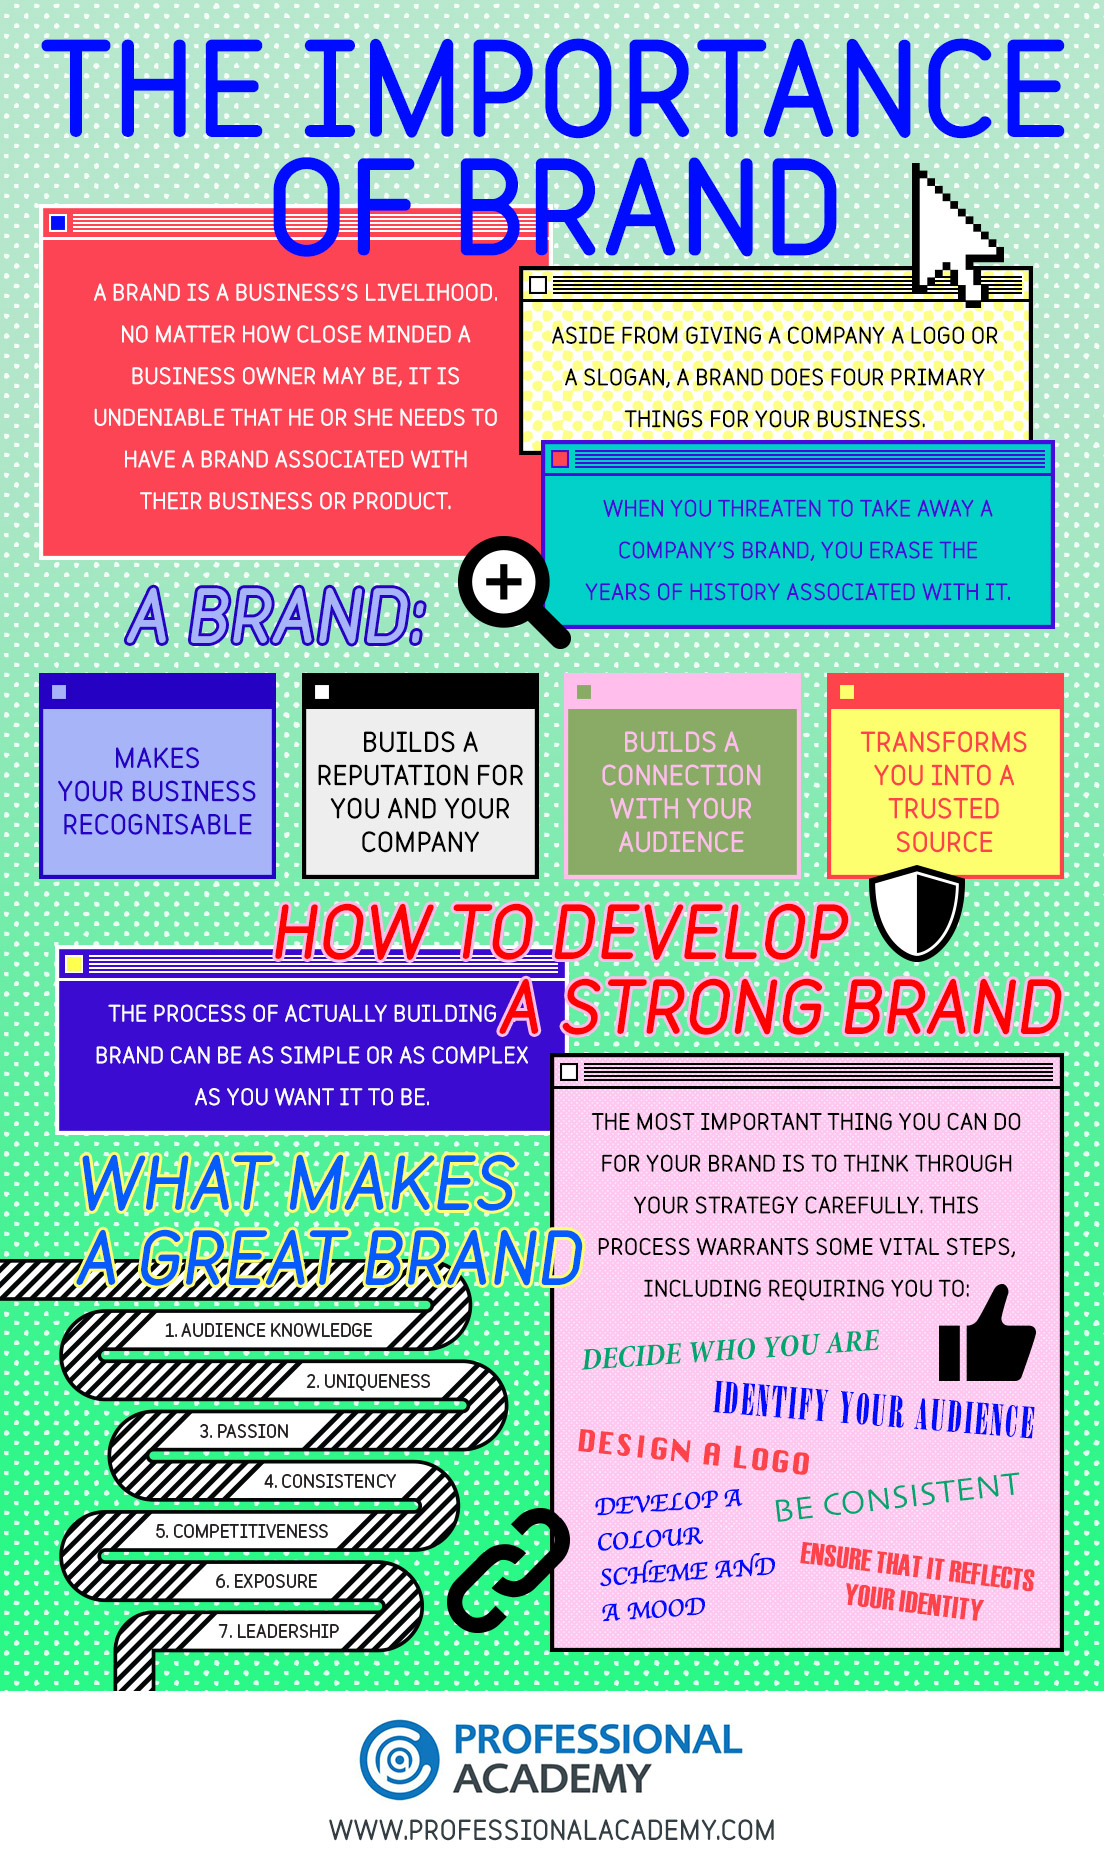 The Importance of Brand Infographic